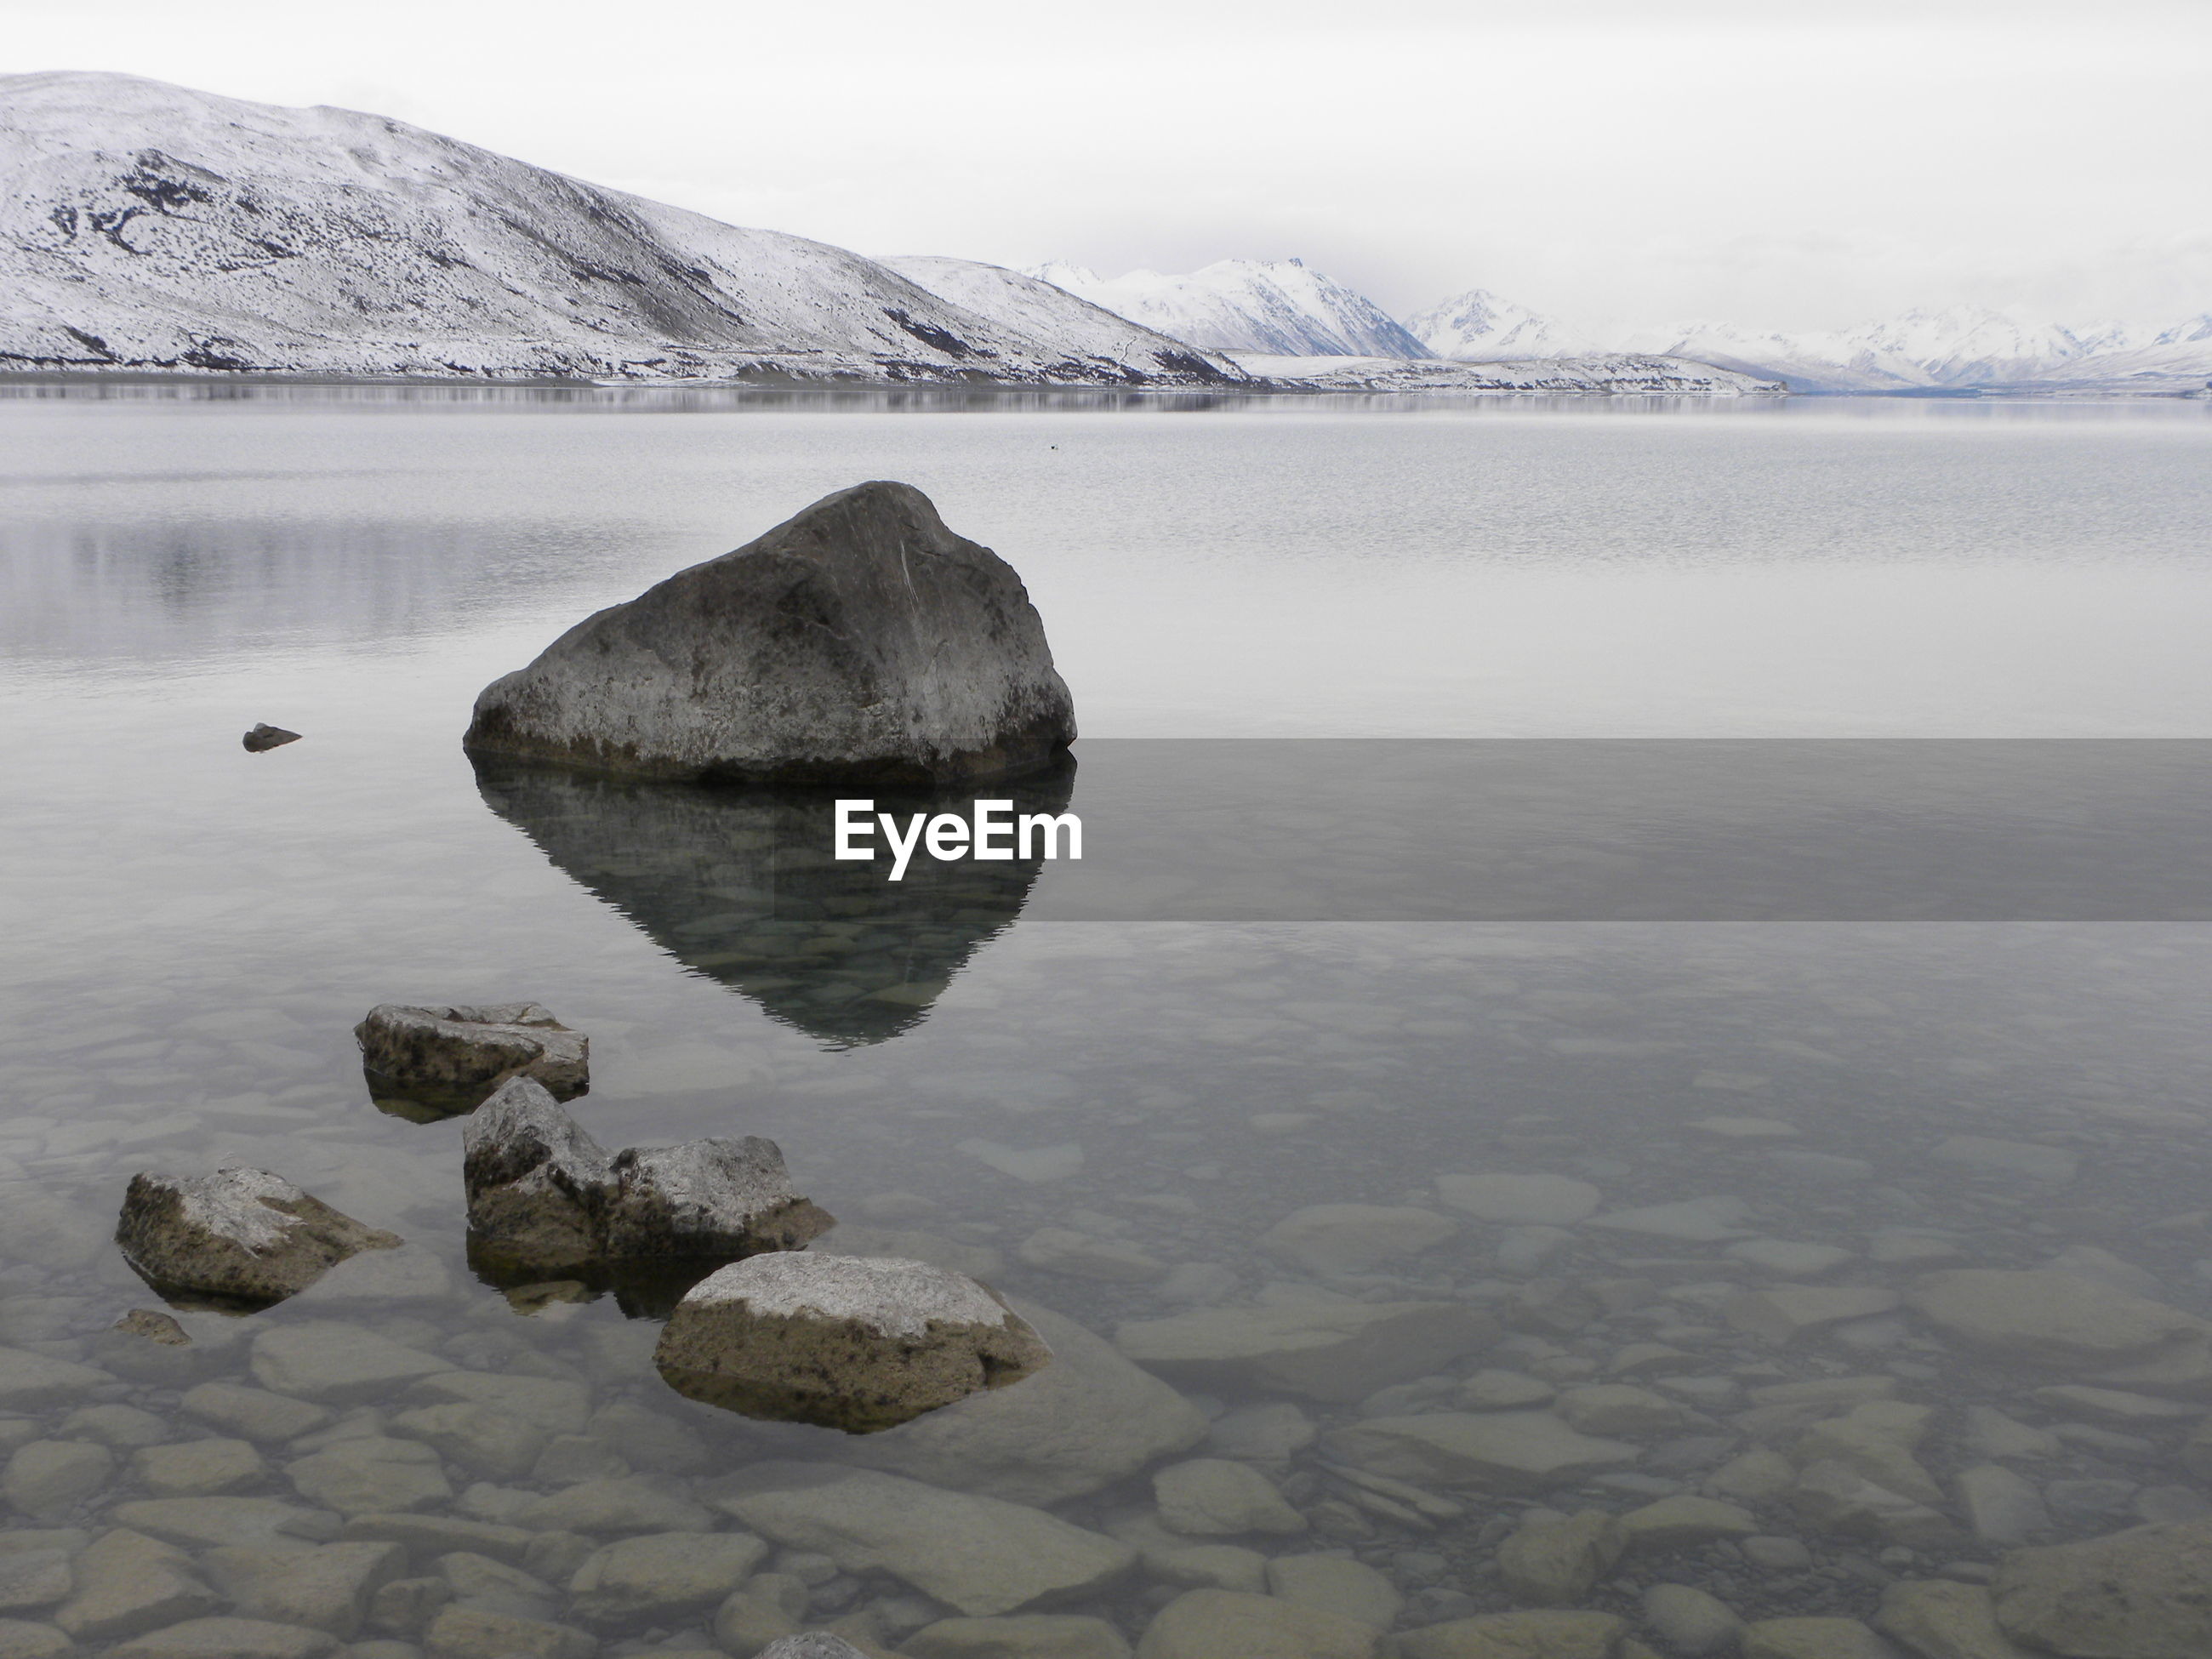 ROCKS BY LAKE AGAINST SNOWCAPPED MOUNTAINS